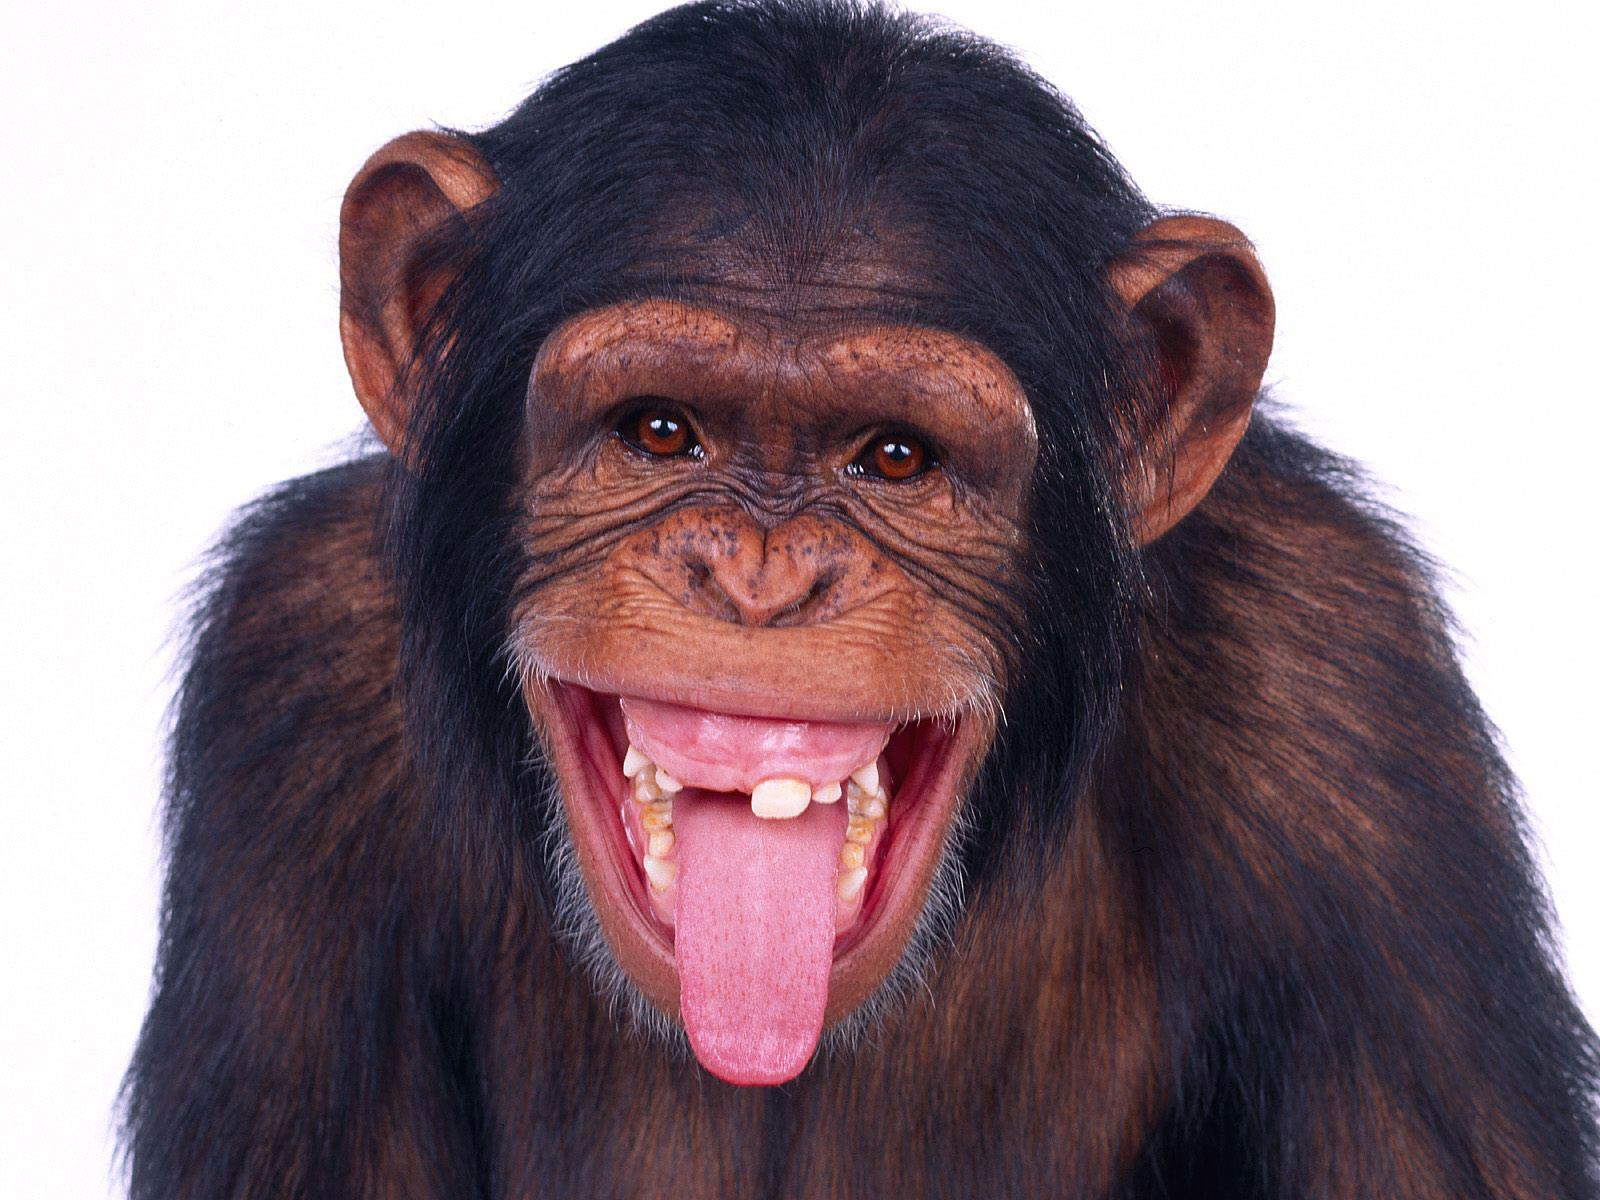 Chimpanzee Wallpapers and backgrounds